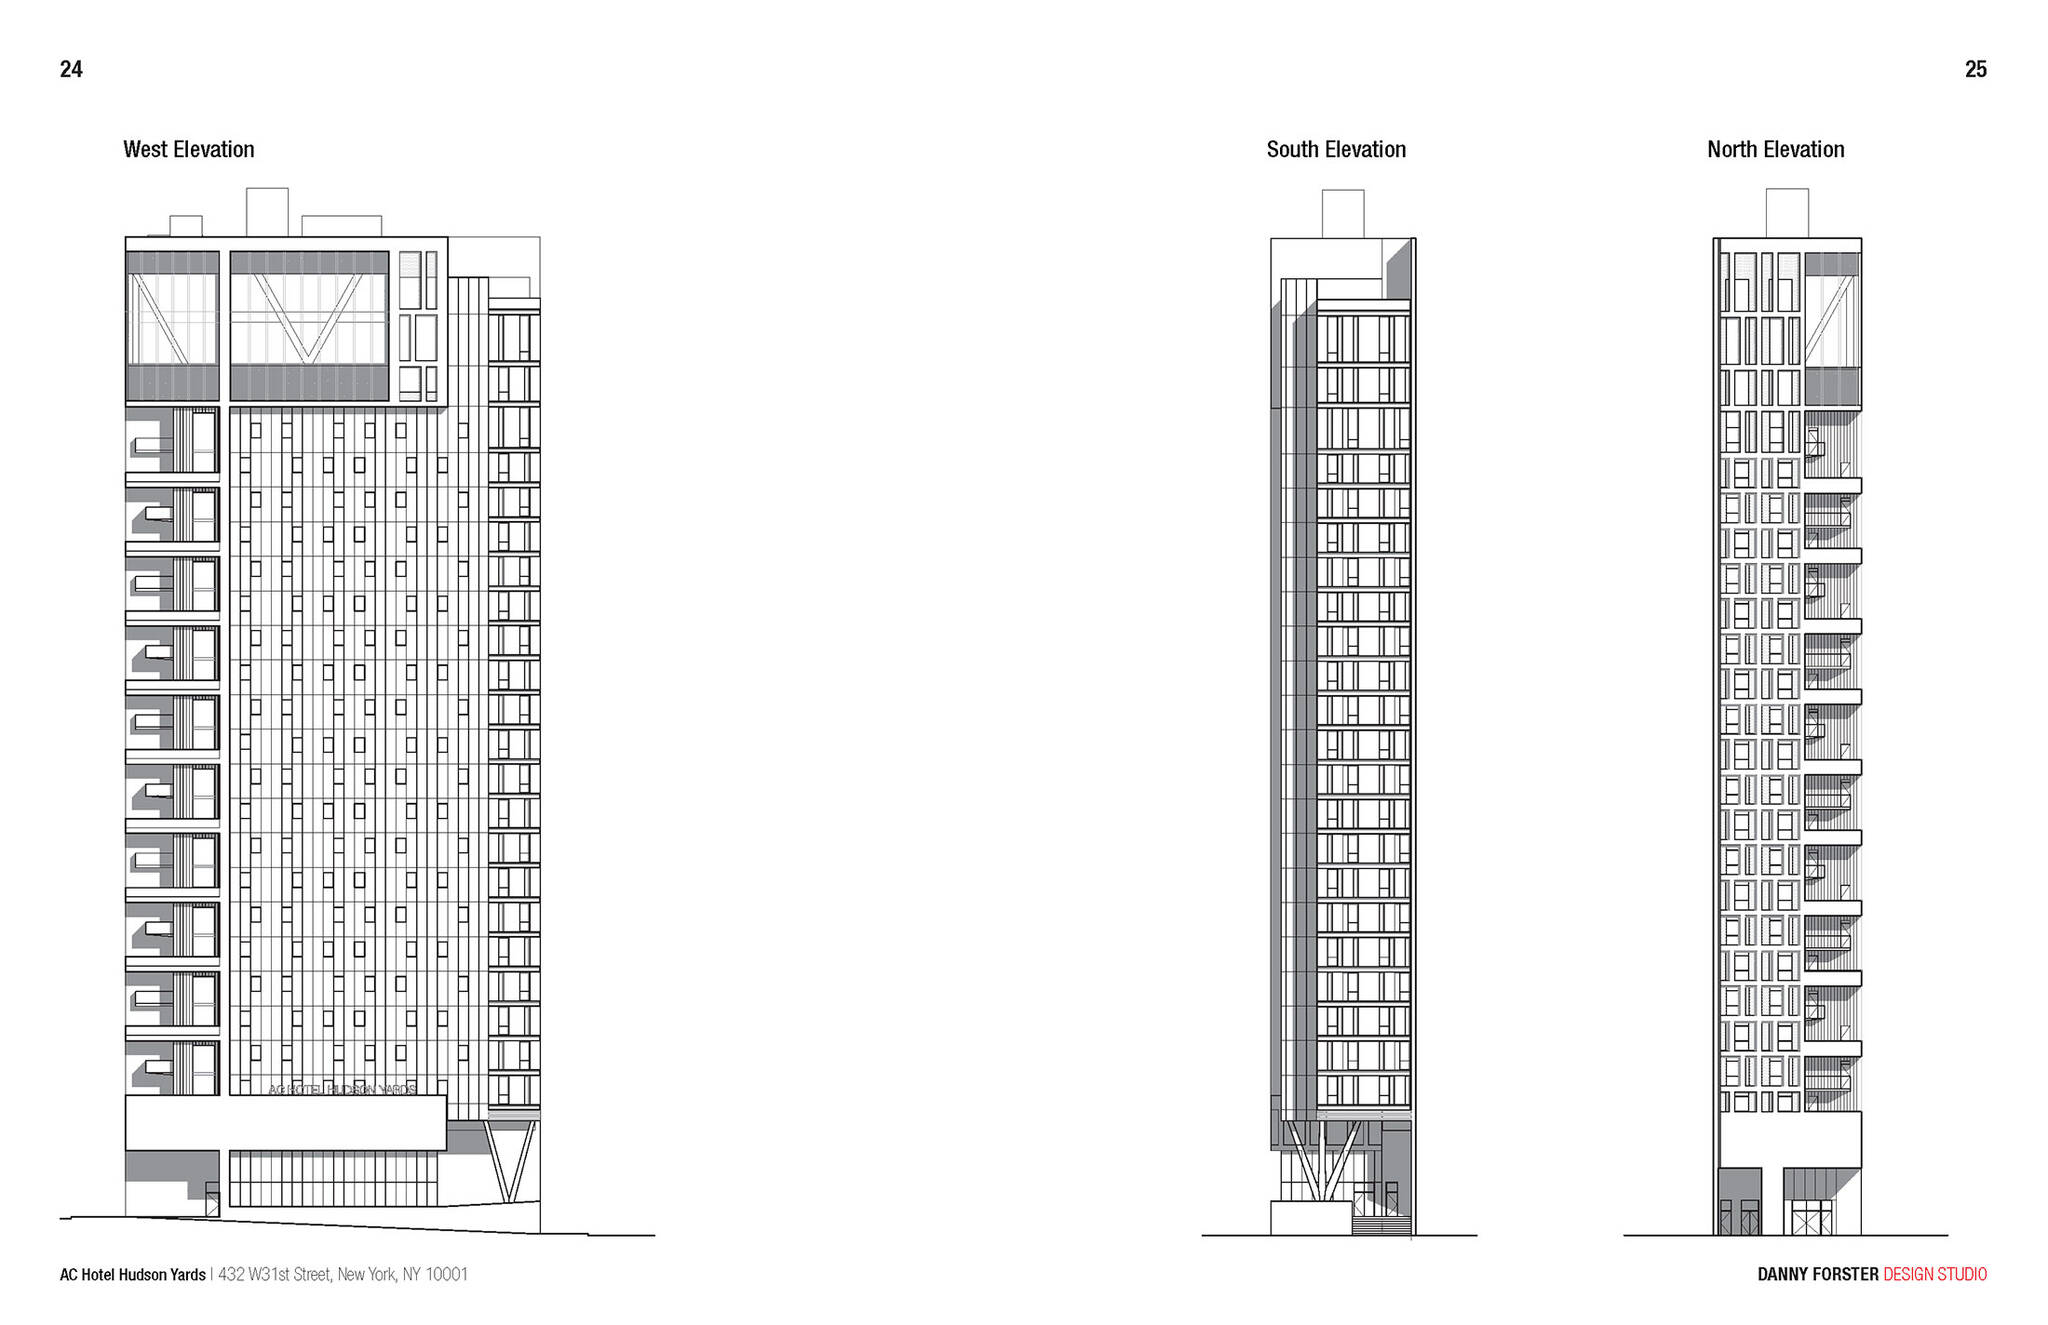 Elevation views of the Hudson Yards Autograph Hotel project by Marriott, a modular hotel tower located at 432 West 31st Street in Hudson Yards, New York City designed by the architecture studio Danny Forster & Architecture